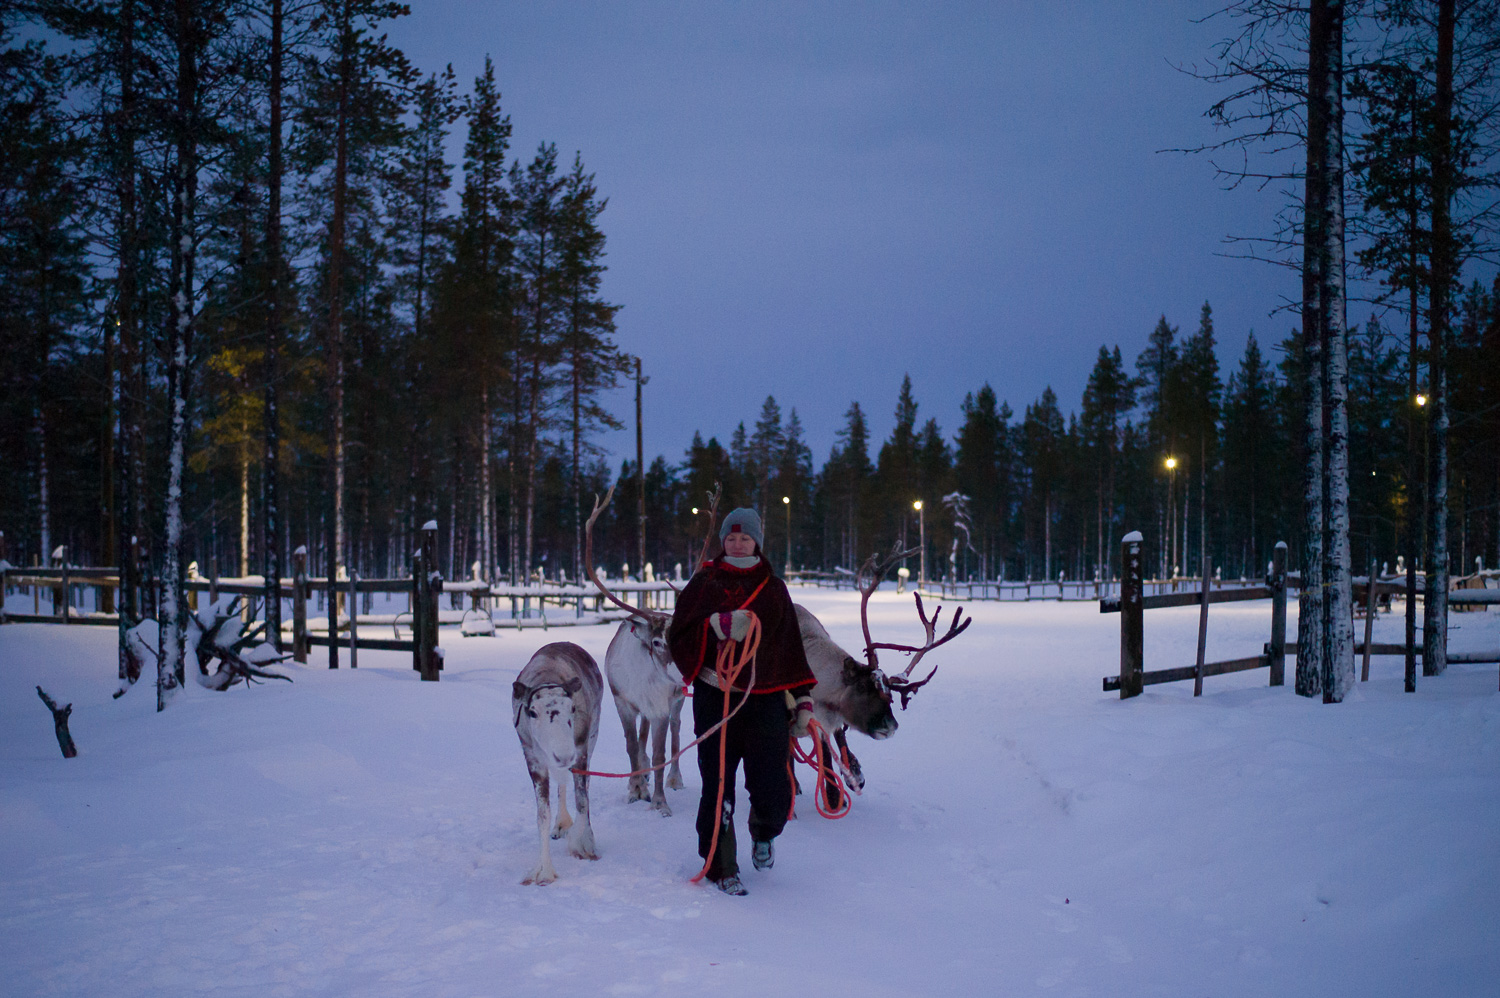 Reindeer Herder after our safaris.there is no wild reindeer in Lapland, all of them are owned by herders